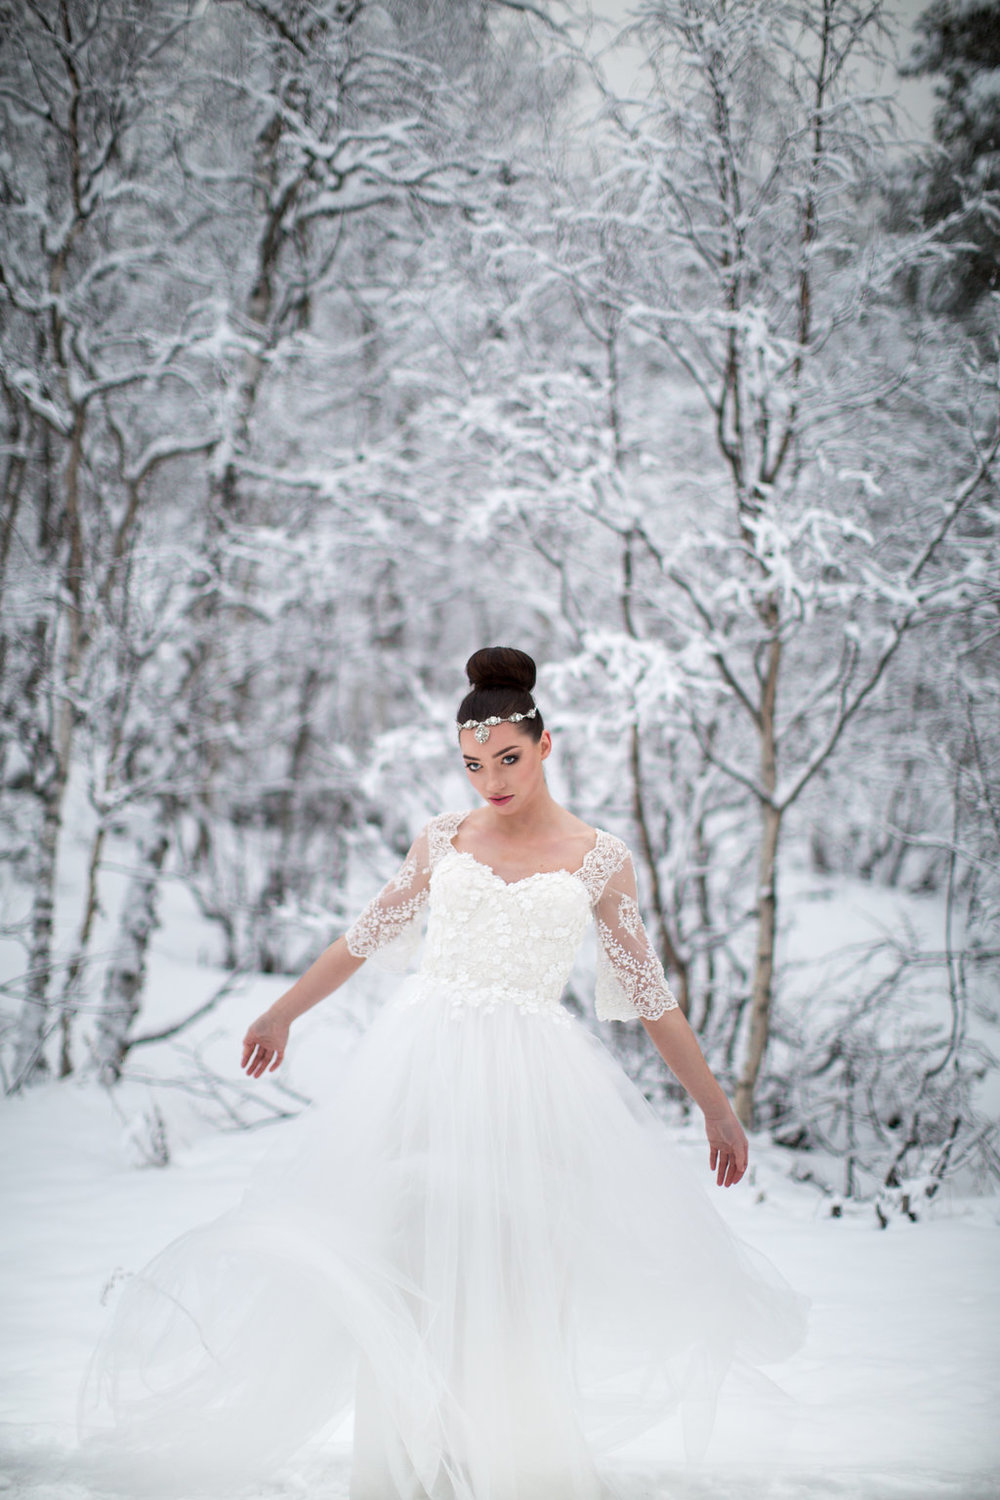 Edera Jewelry Blog | Winter Wedding Gown and Headpiece